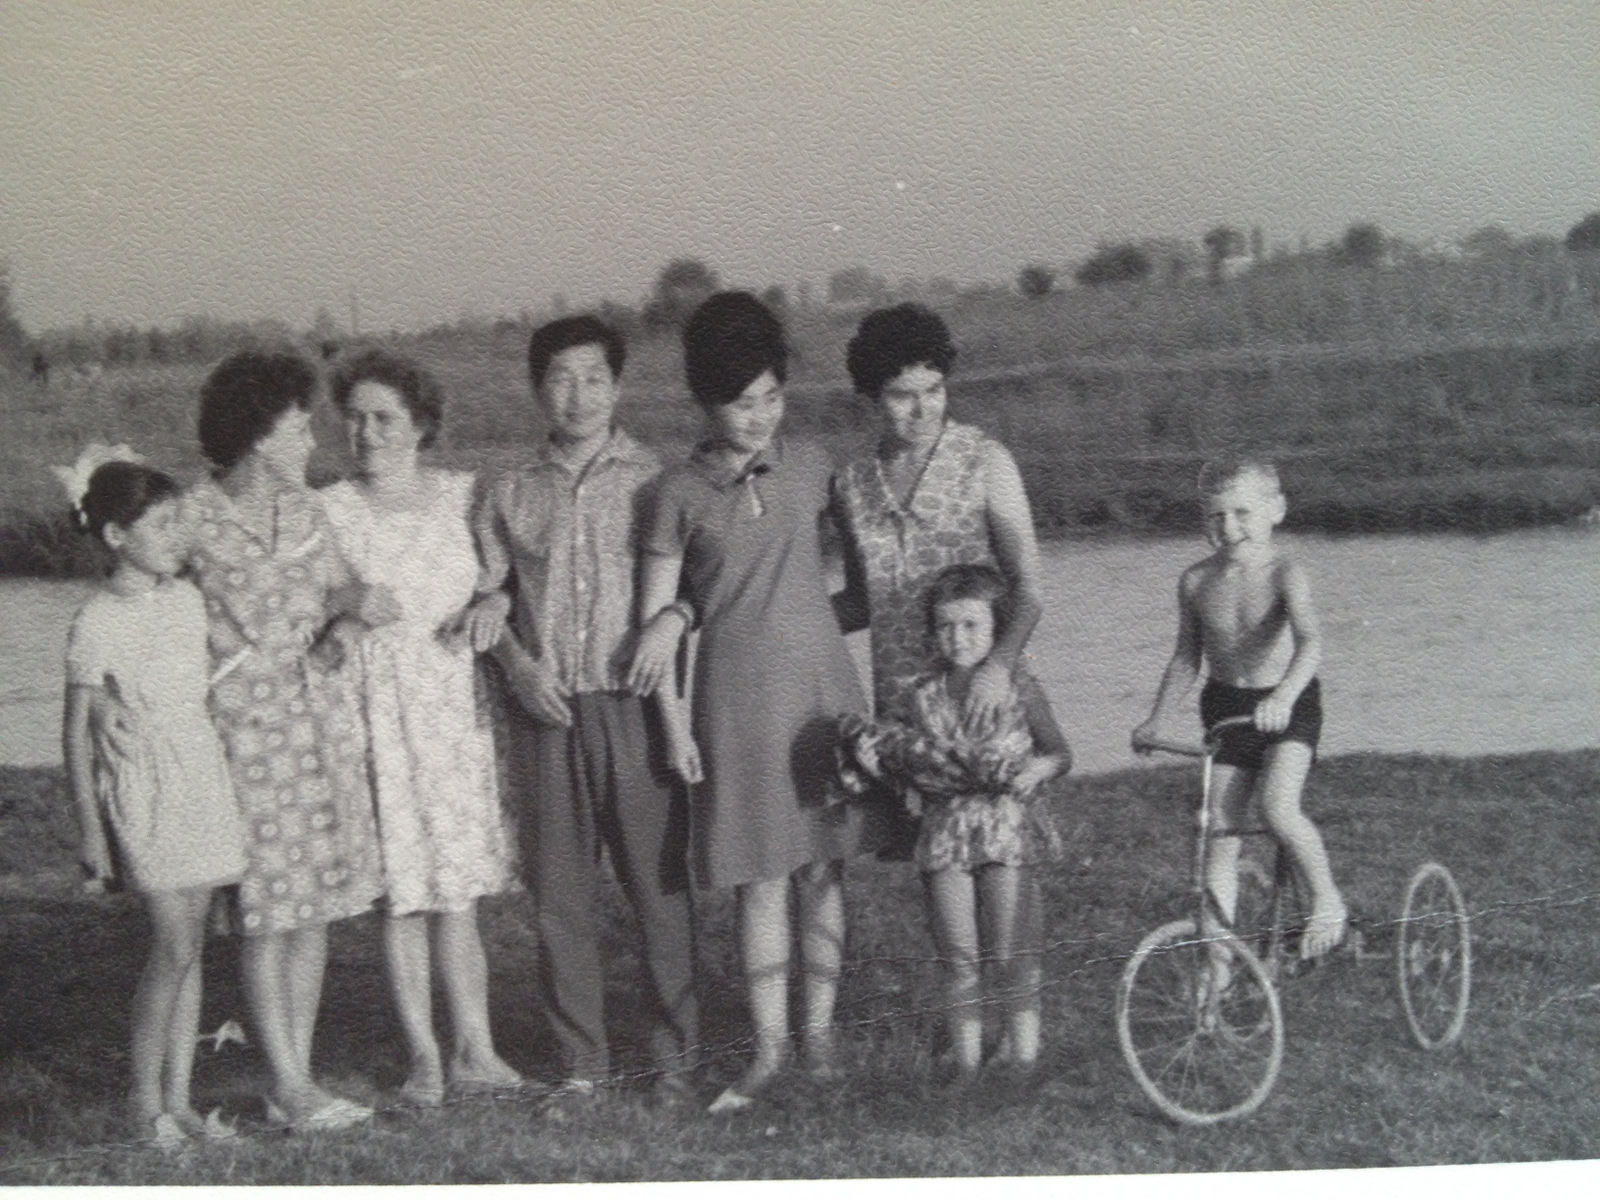 A true friendship of people in Tashkent in the late 1960s: Russians, Tartars and Koreans together, having rest near the Karasu river.